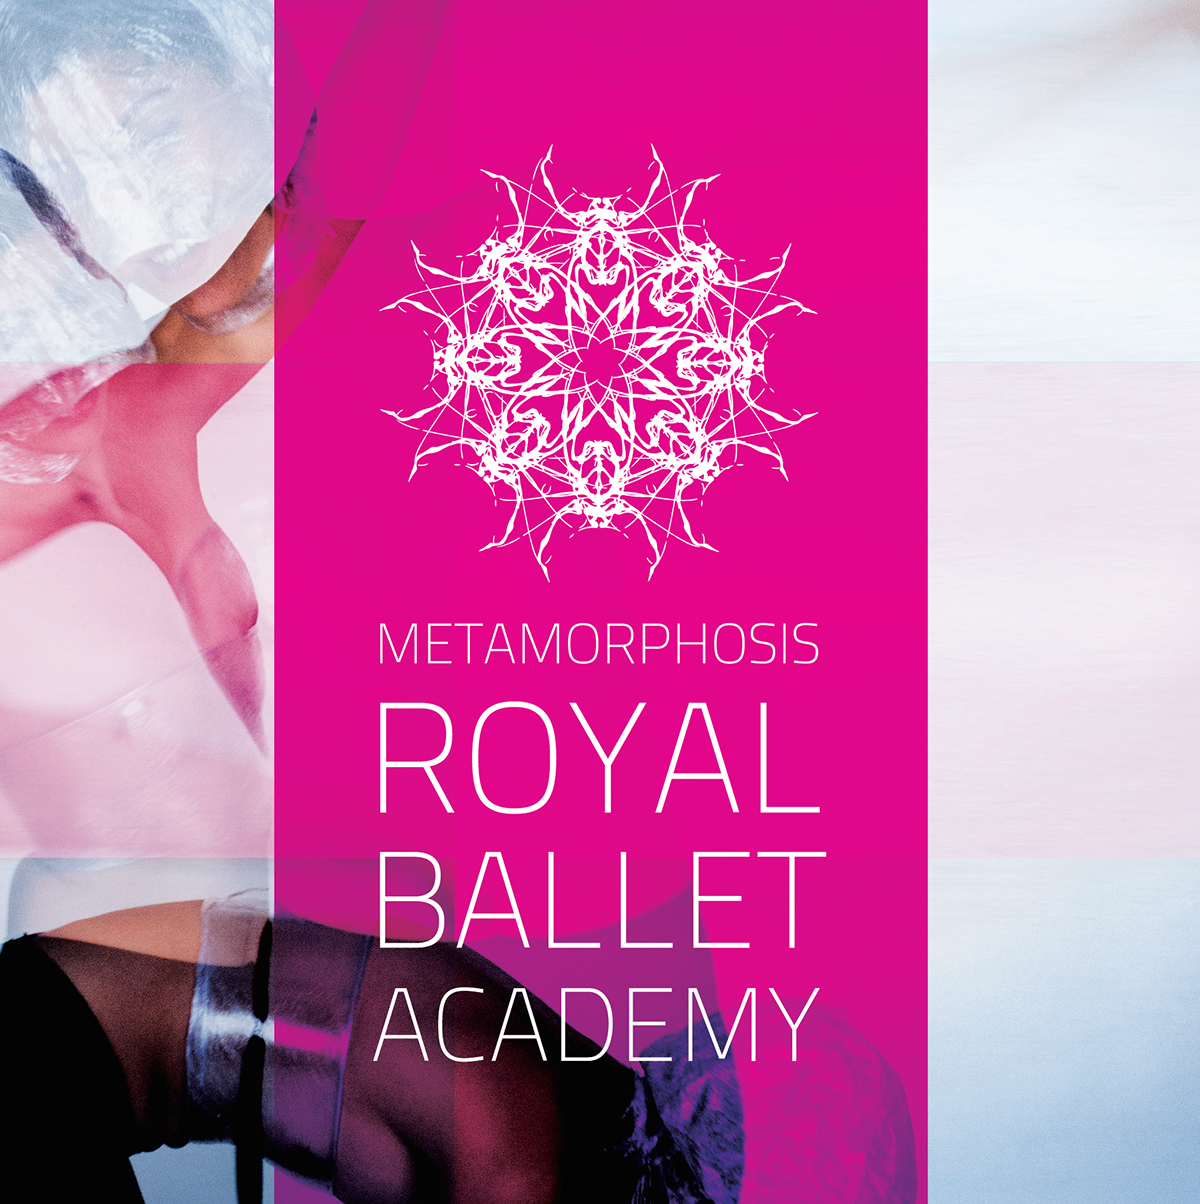 Metamorphosis ballet academy royal Insects DANCE   creative direction art identity